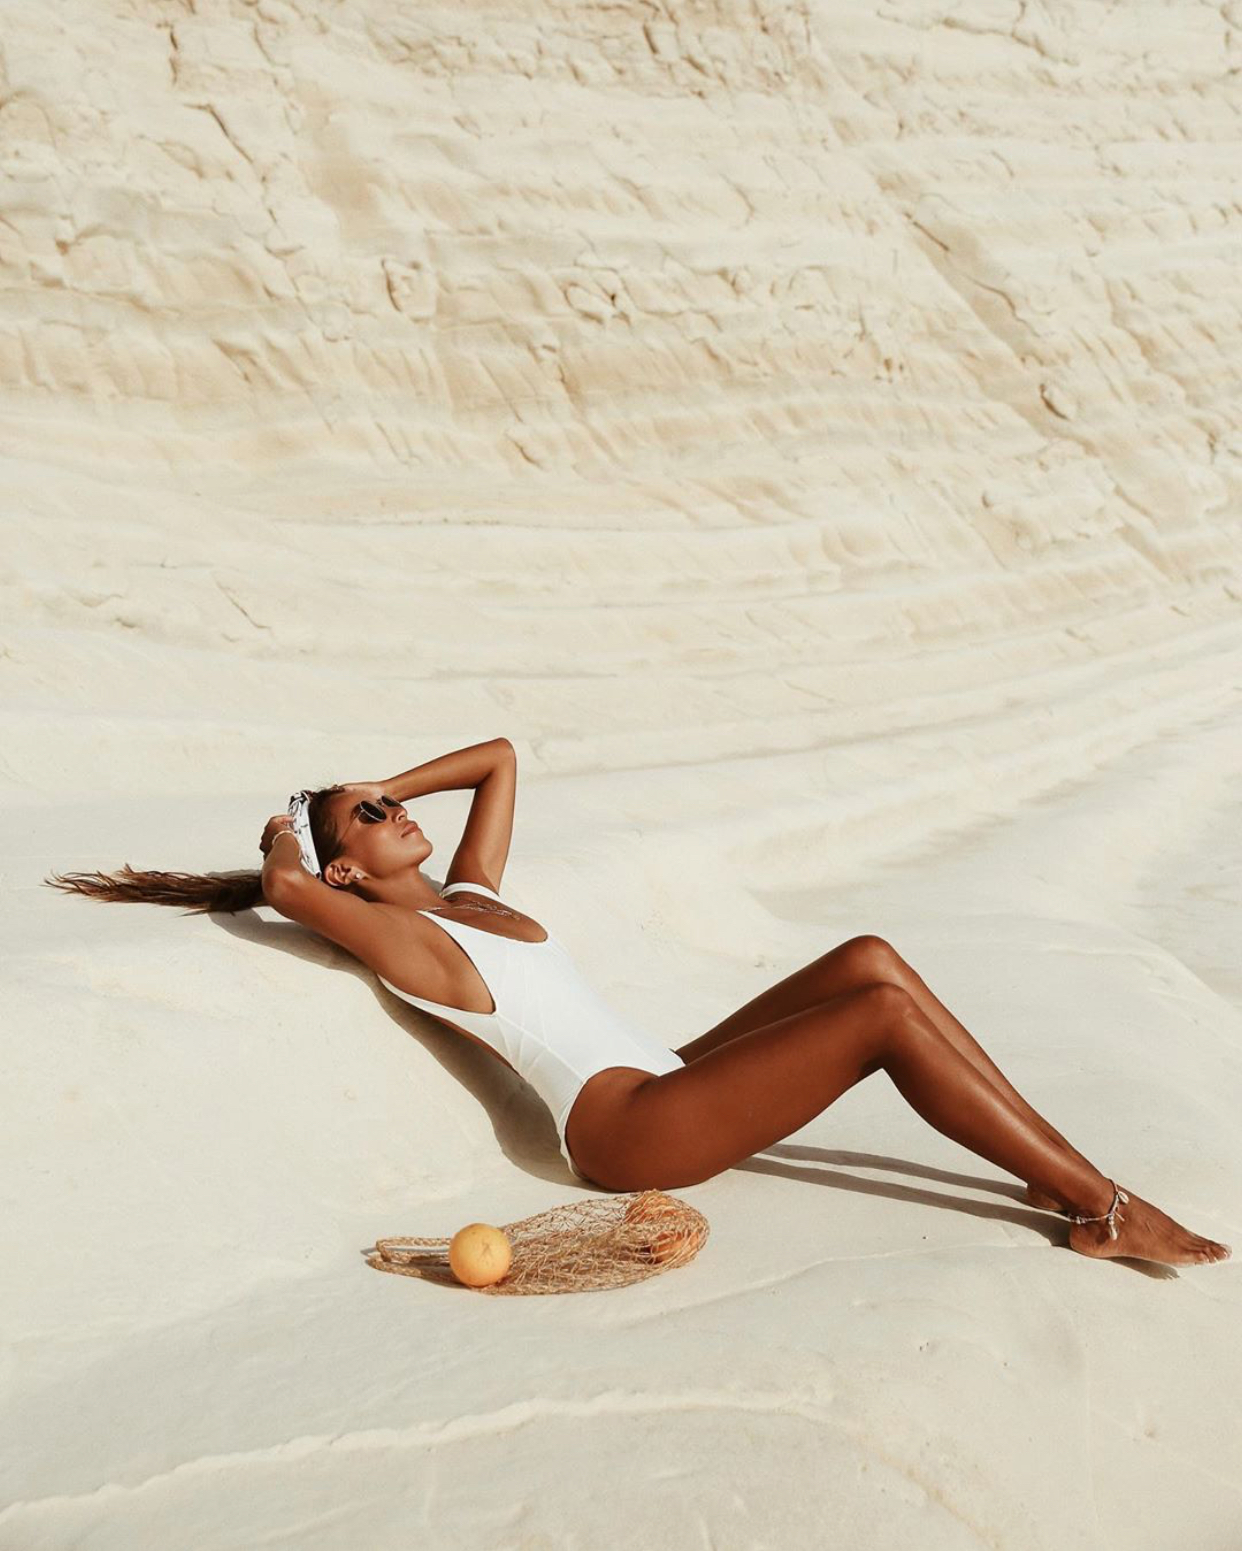 Trends + Thoughts: On Bronzed Skin & Sunbathing